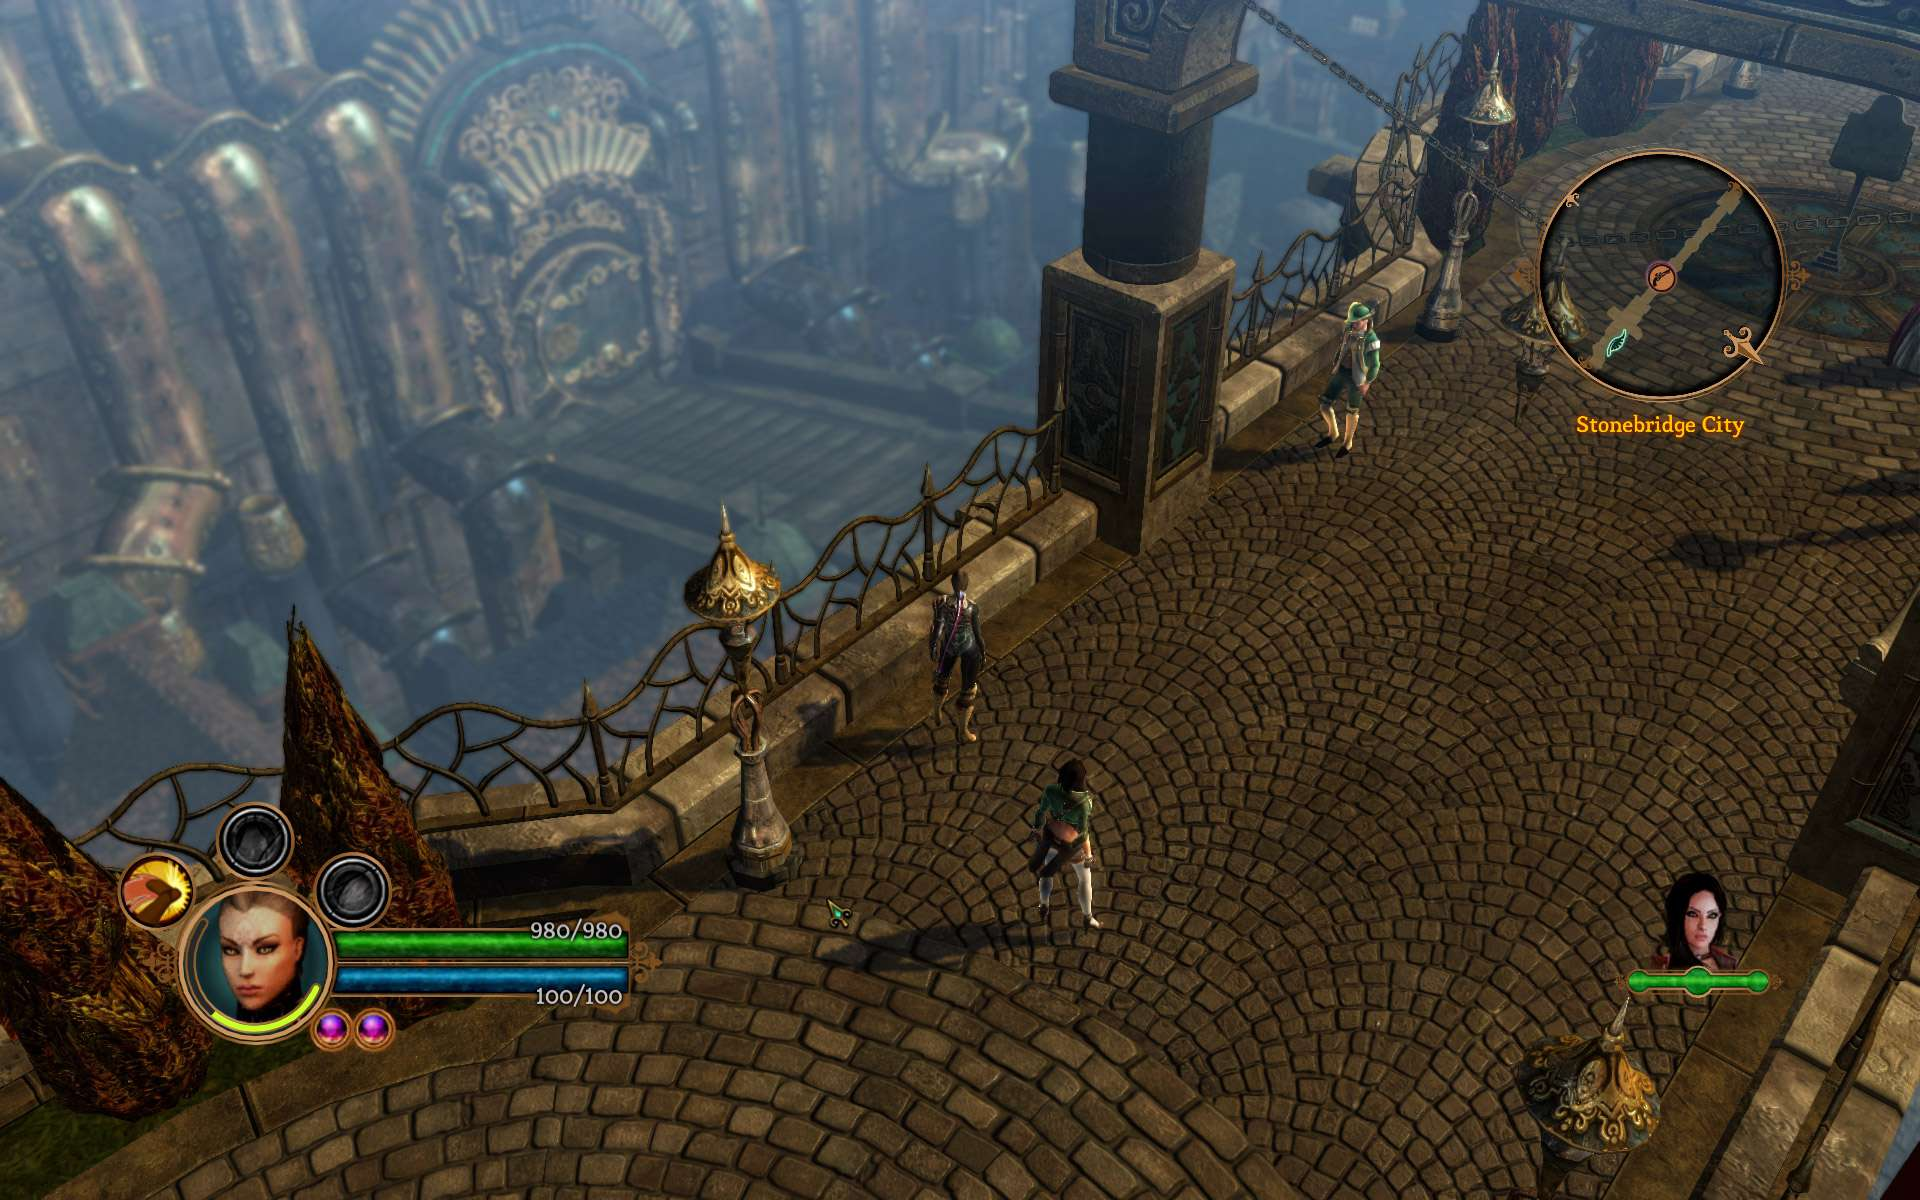 Dungeon siege 3 hentia exposed image